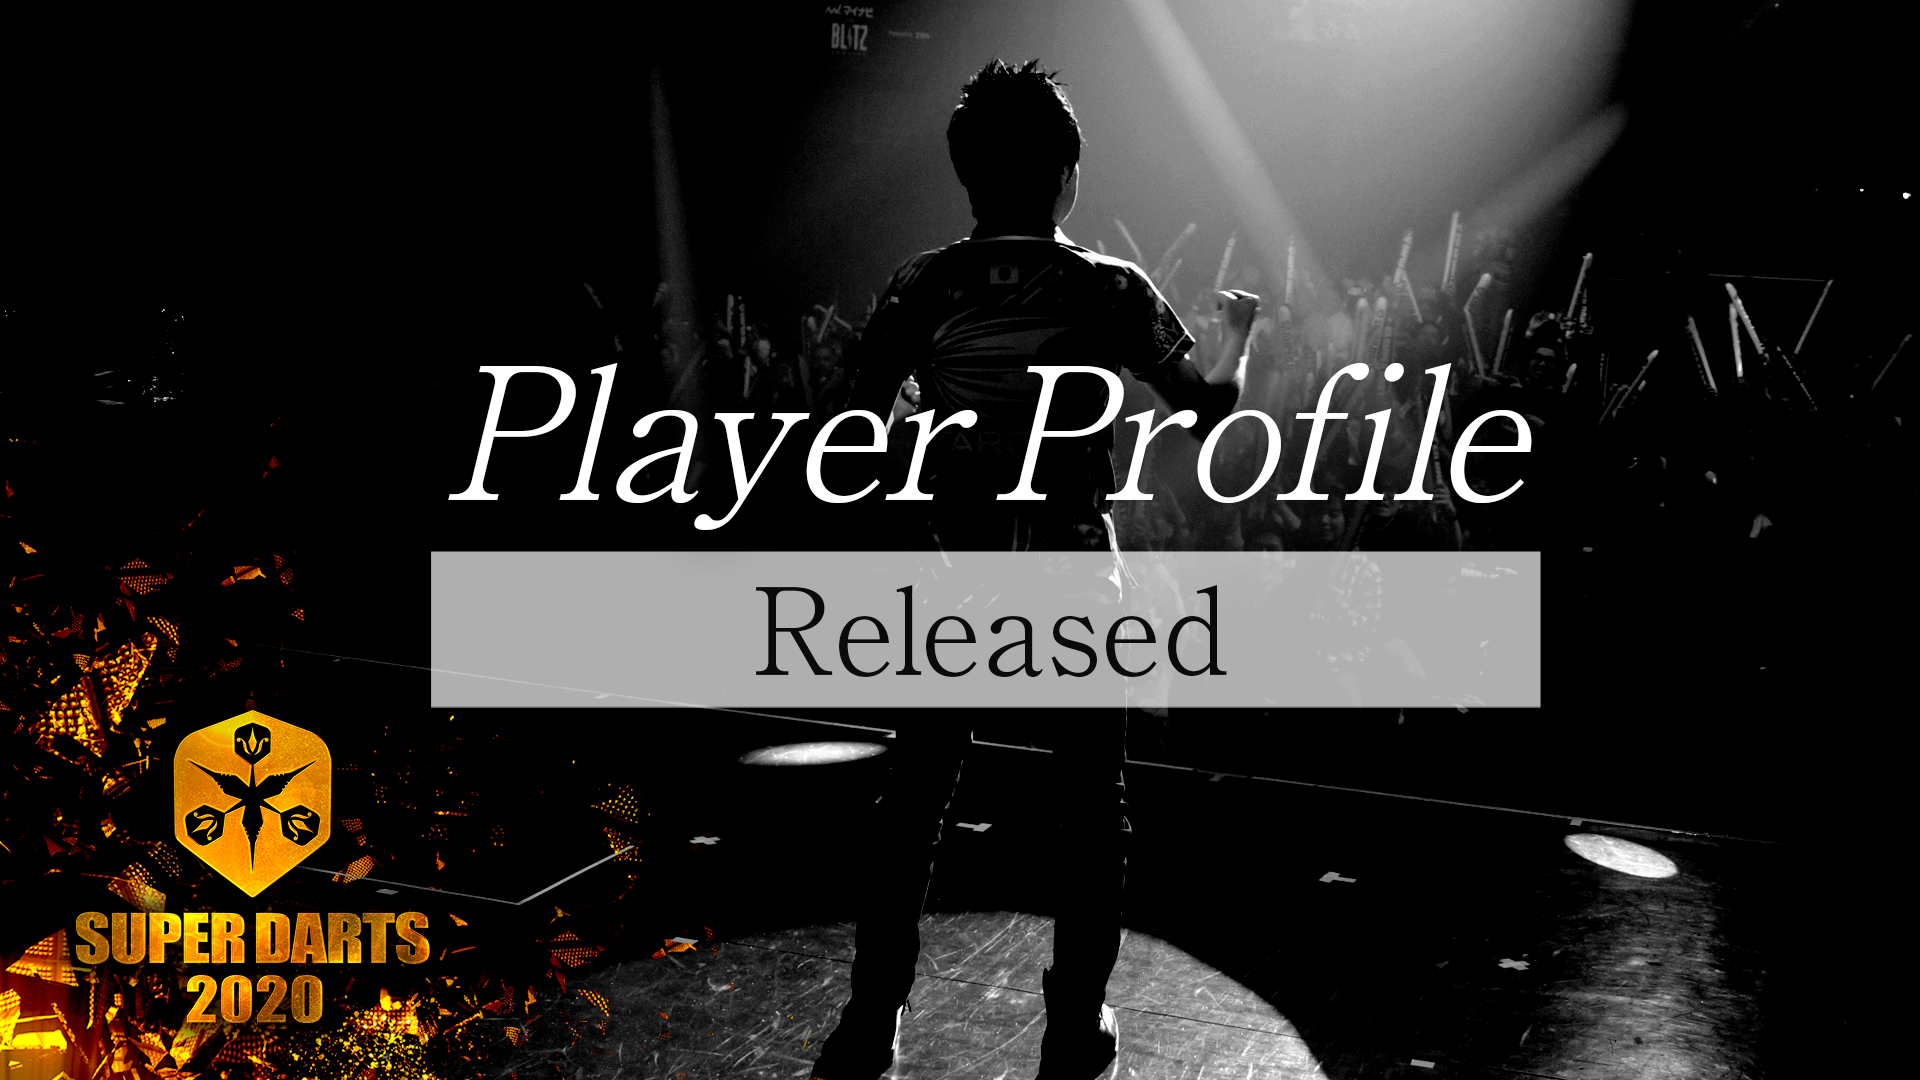 【SUPER DARTS 2020】Player Profile Released